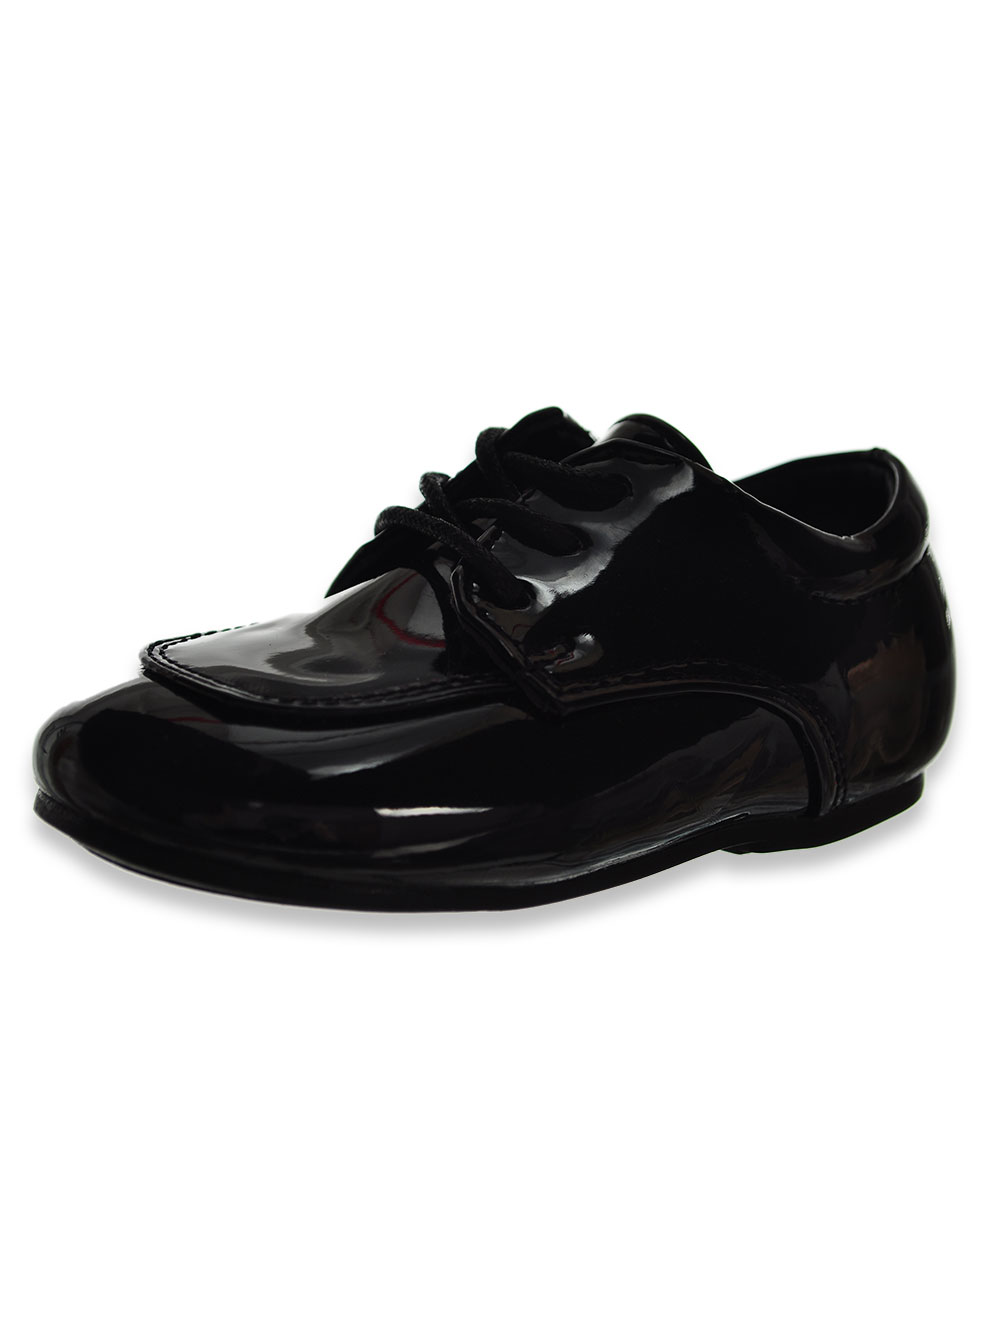 Size 2 Infant Dress Shoes for Boys